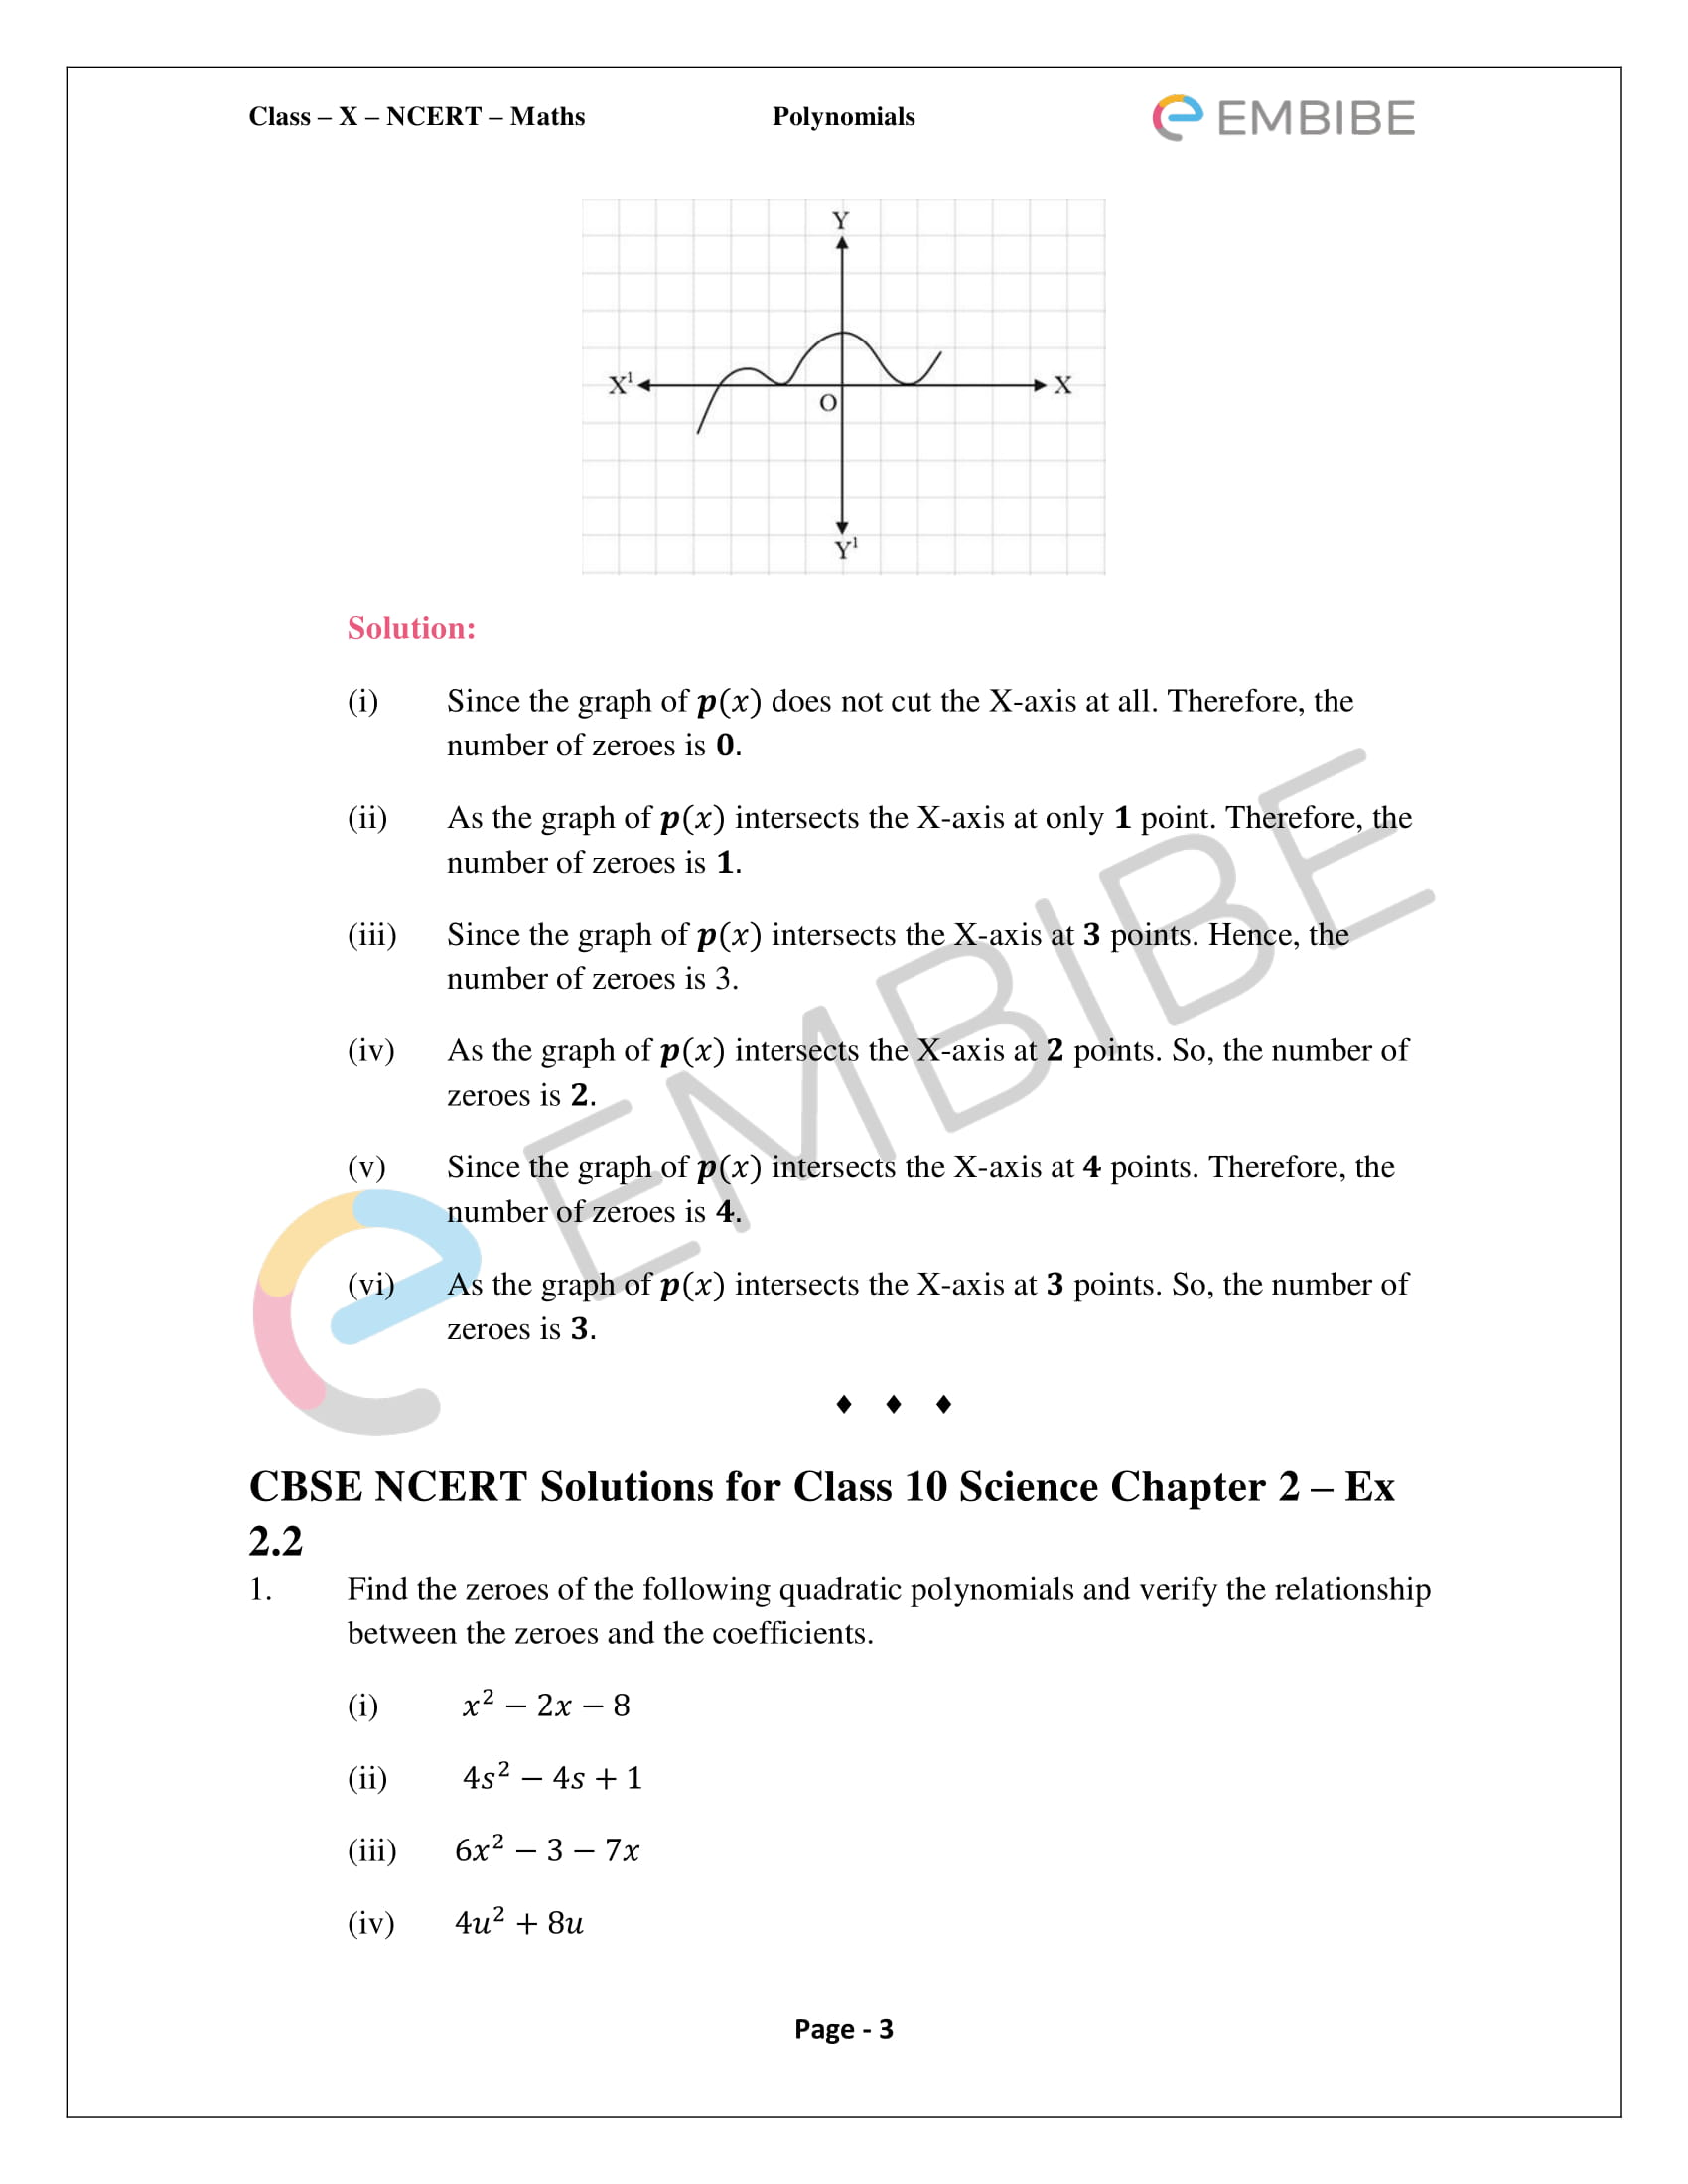 CBSE NCERT Solutions For Class 10 Maths Chapter 2 - Polynomials PDF